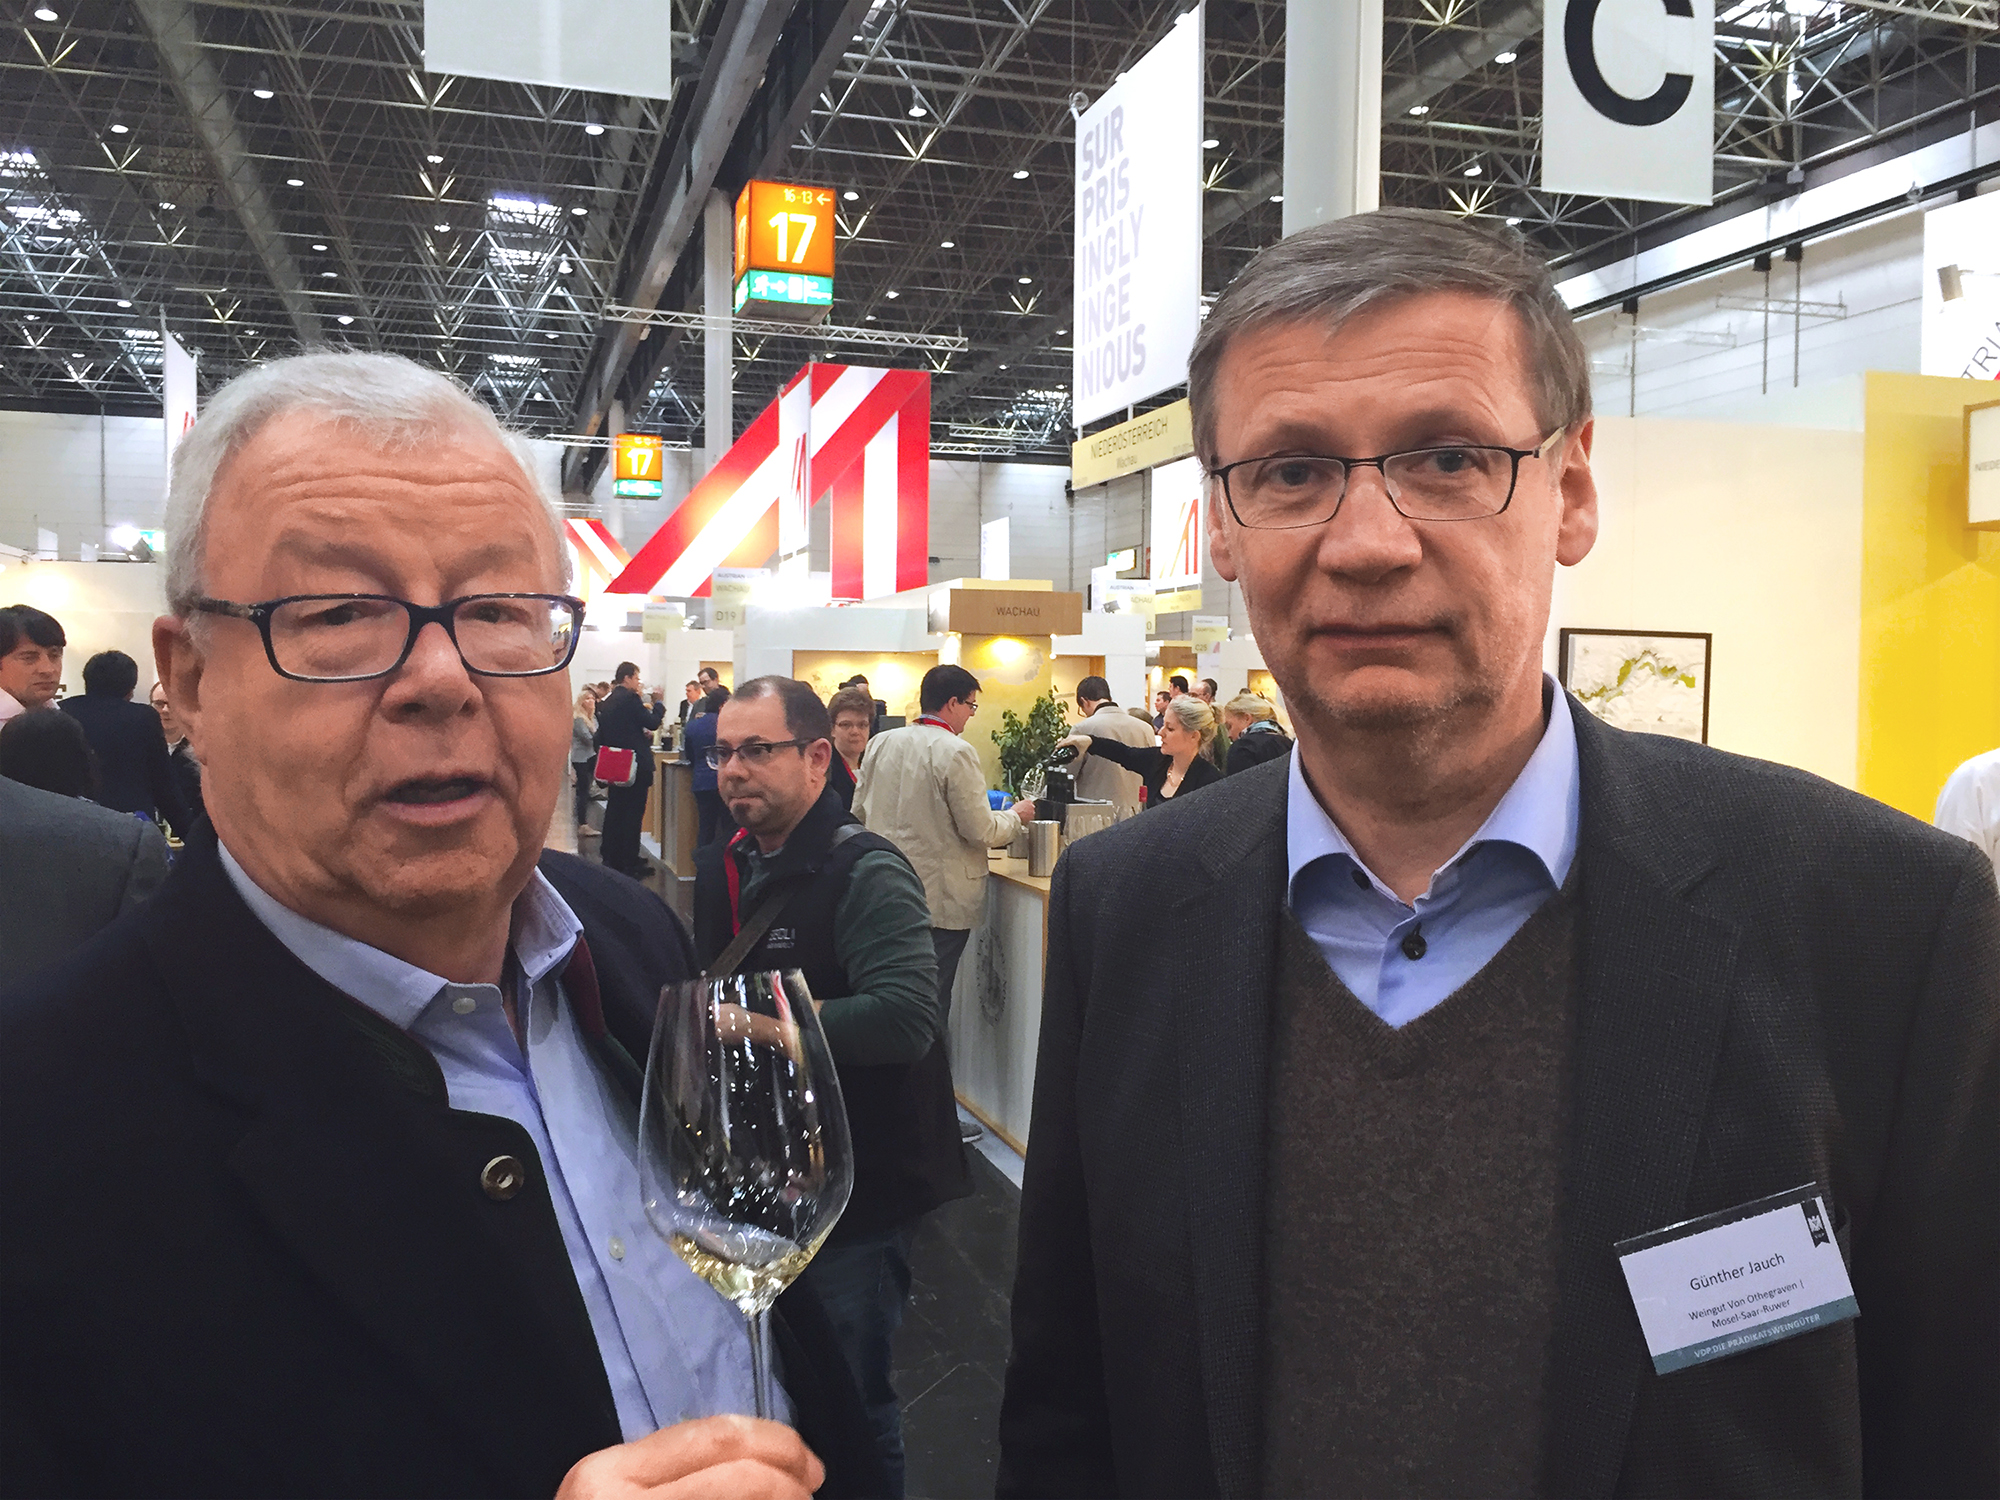 23 weinmarathon in d sseldorf es trafen sich weinfreunde aus aller welt gourmino express. Black Bedroom Furniture Sets. Home Design Ideas